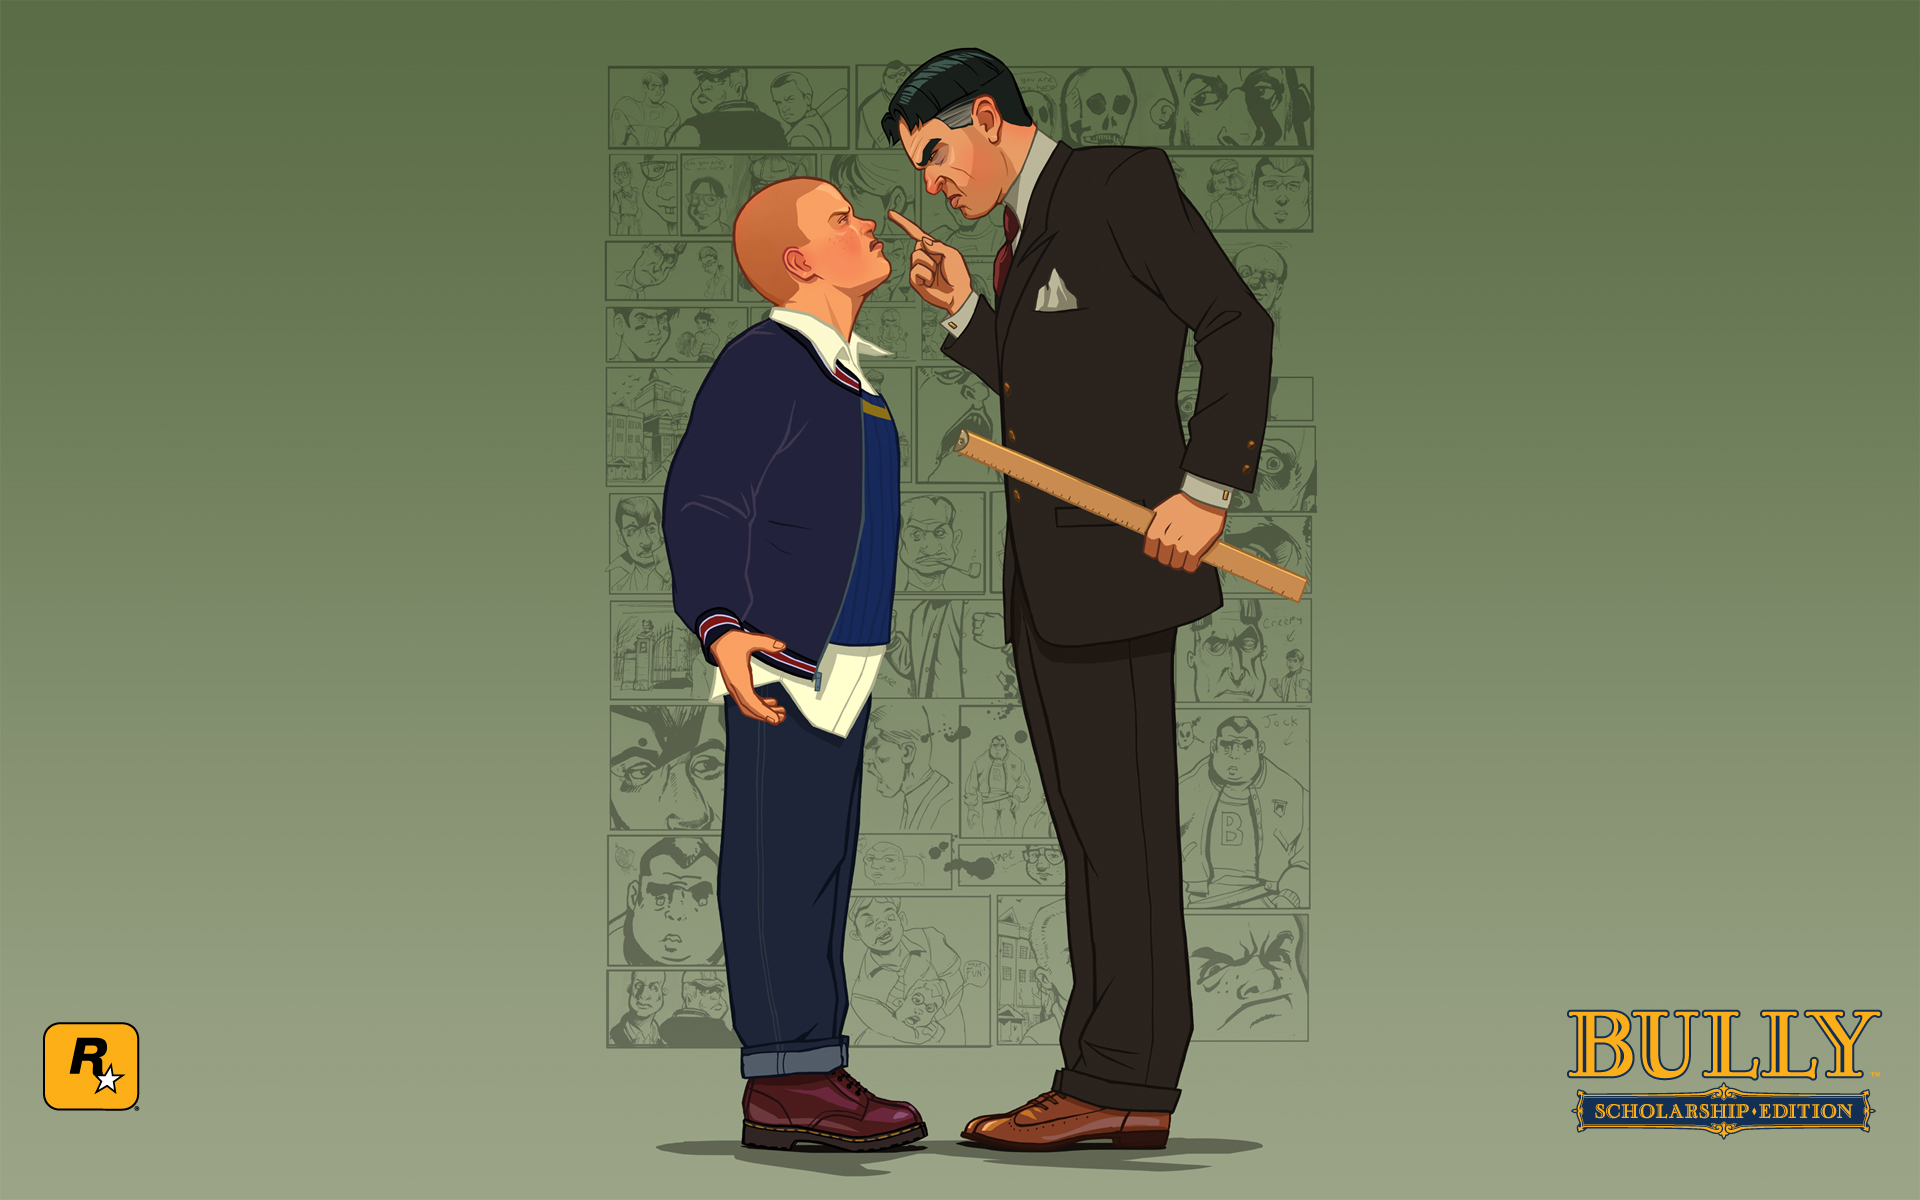 Bully Scholarship Edition 2016 promotional art   MobyGames 1920x1200